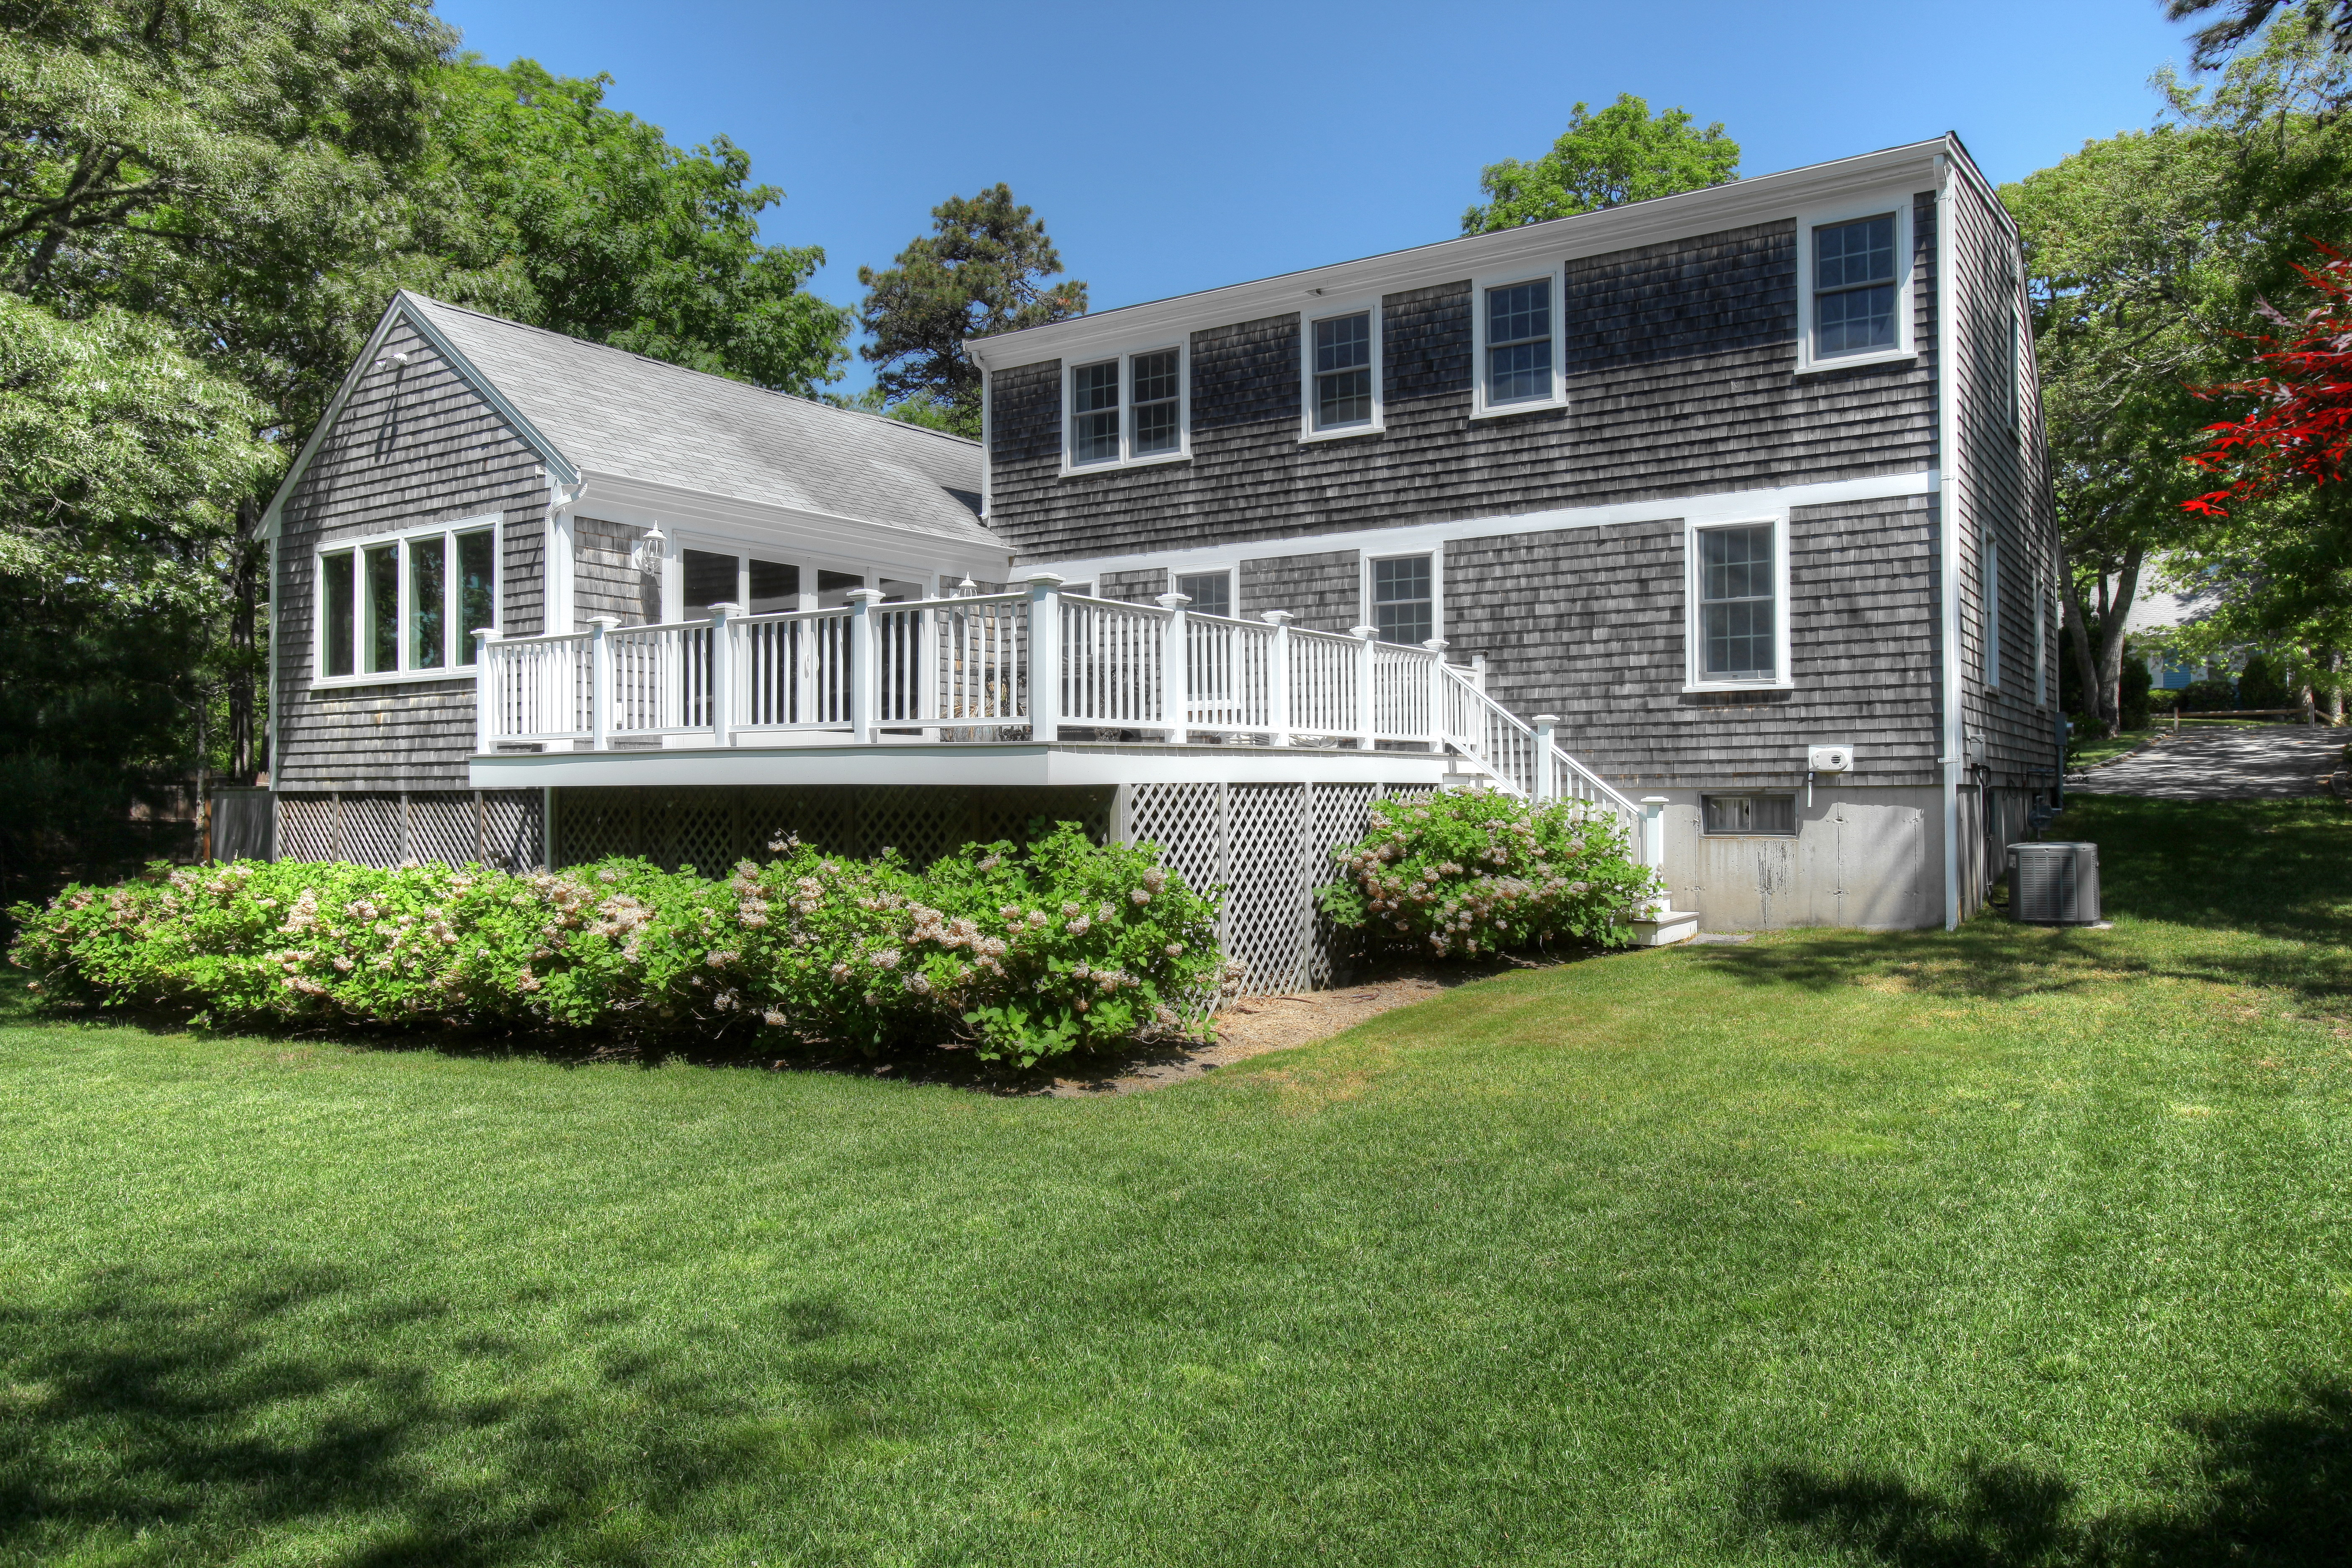 Single Family Home for Sale at 7 Harwood Avenue, Harwich, MA Harwich, Massachusetts, 02645 United States